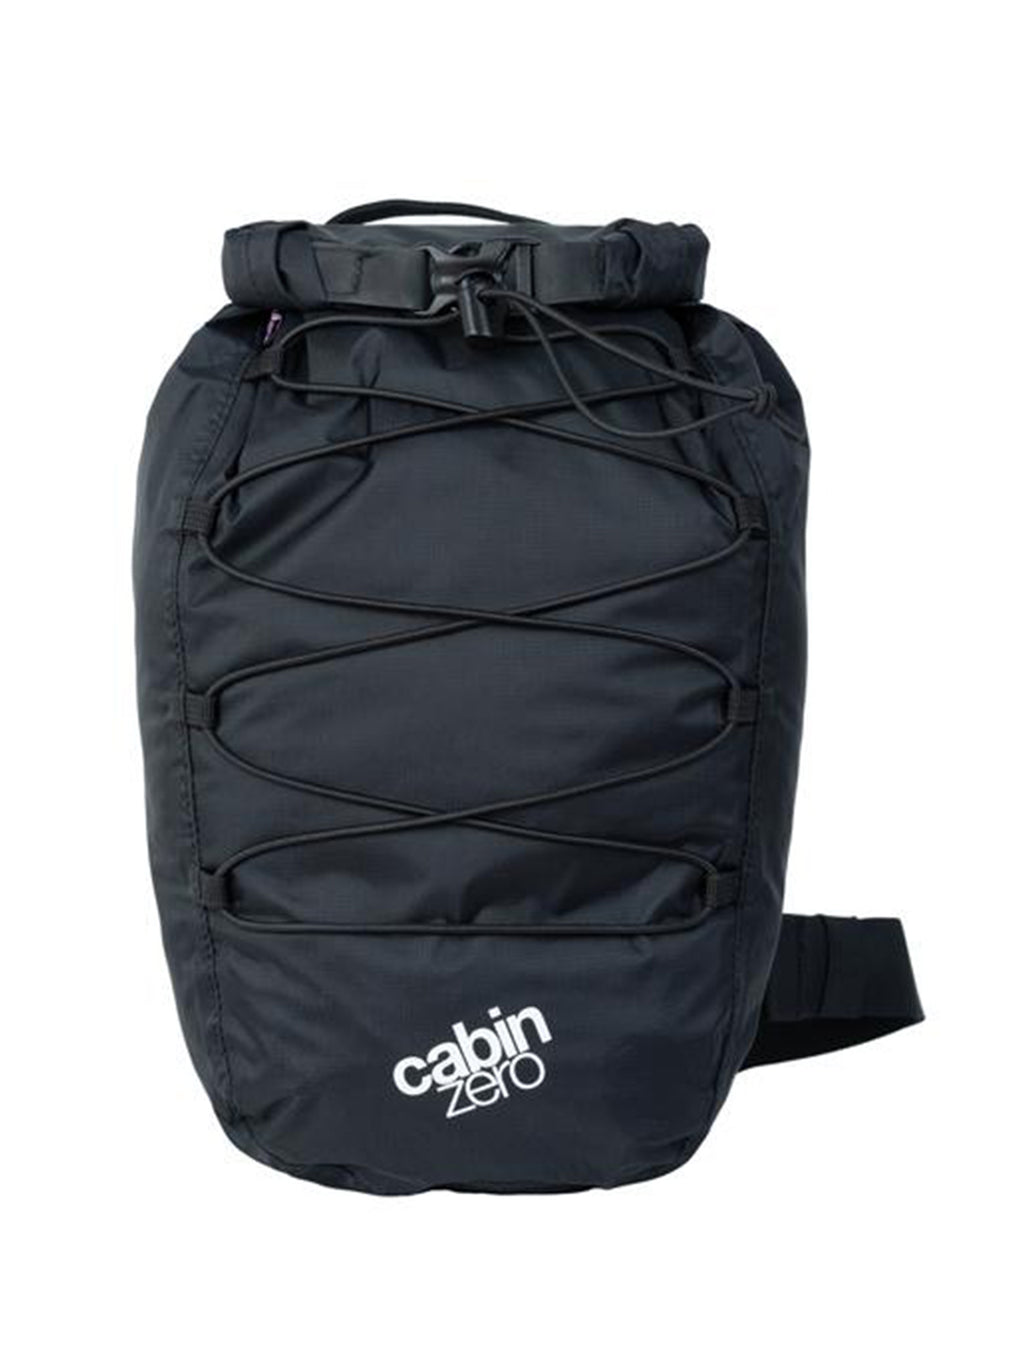 Cabinzero ADV Dry Waterproof Cross Body Bay 11L in Absolute Black Color